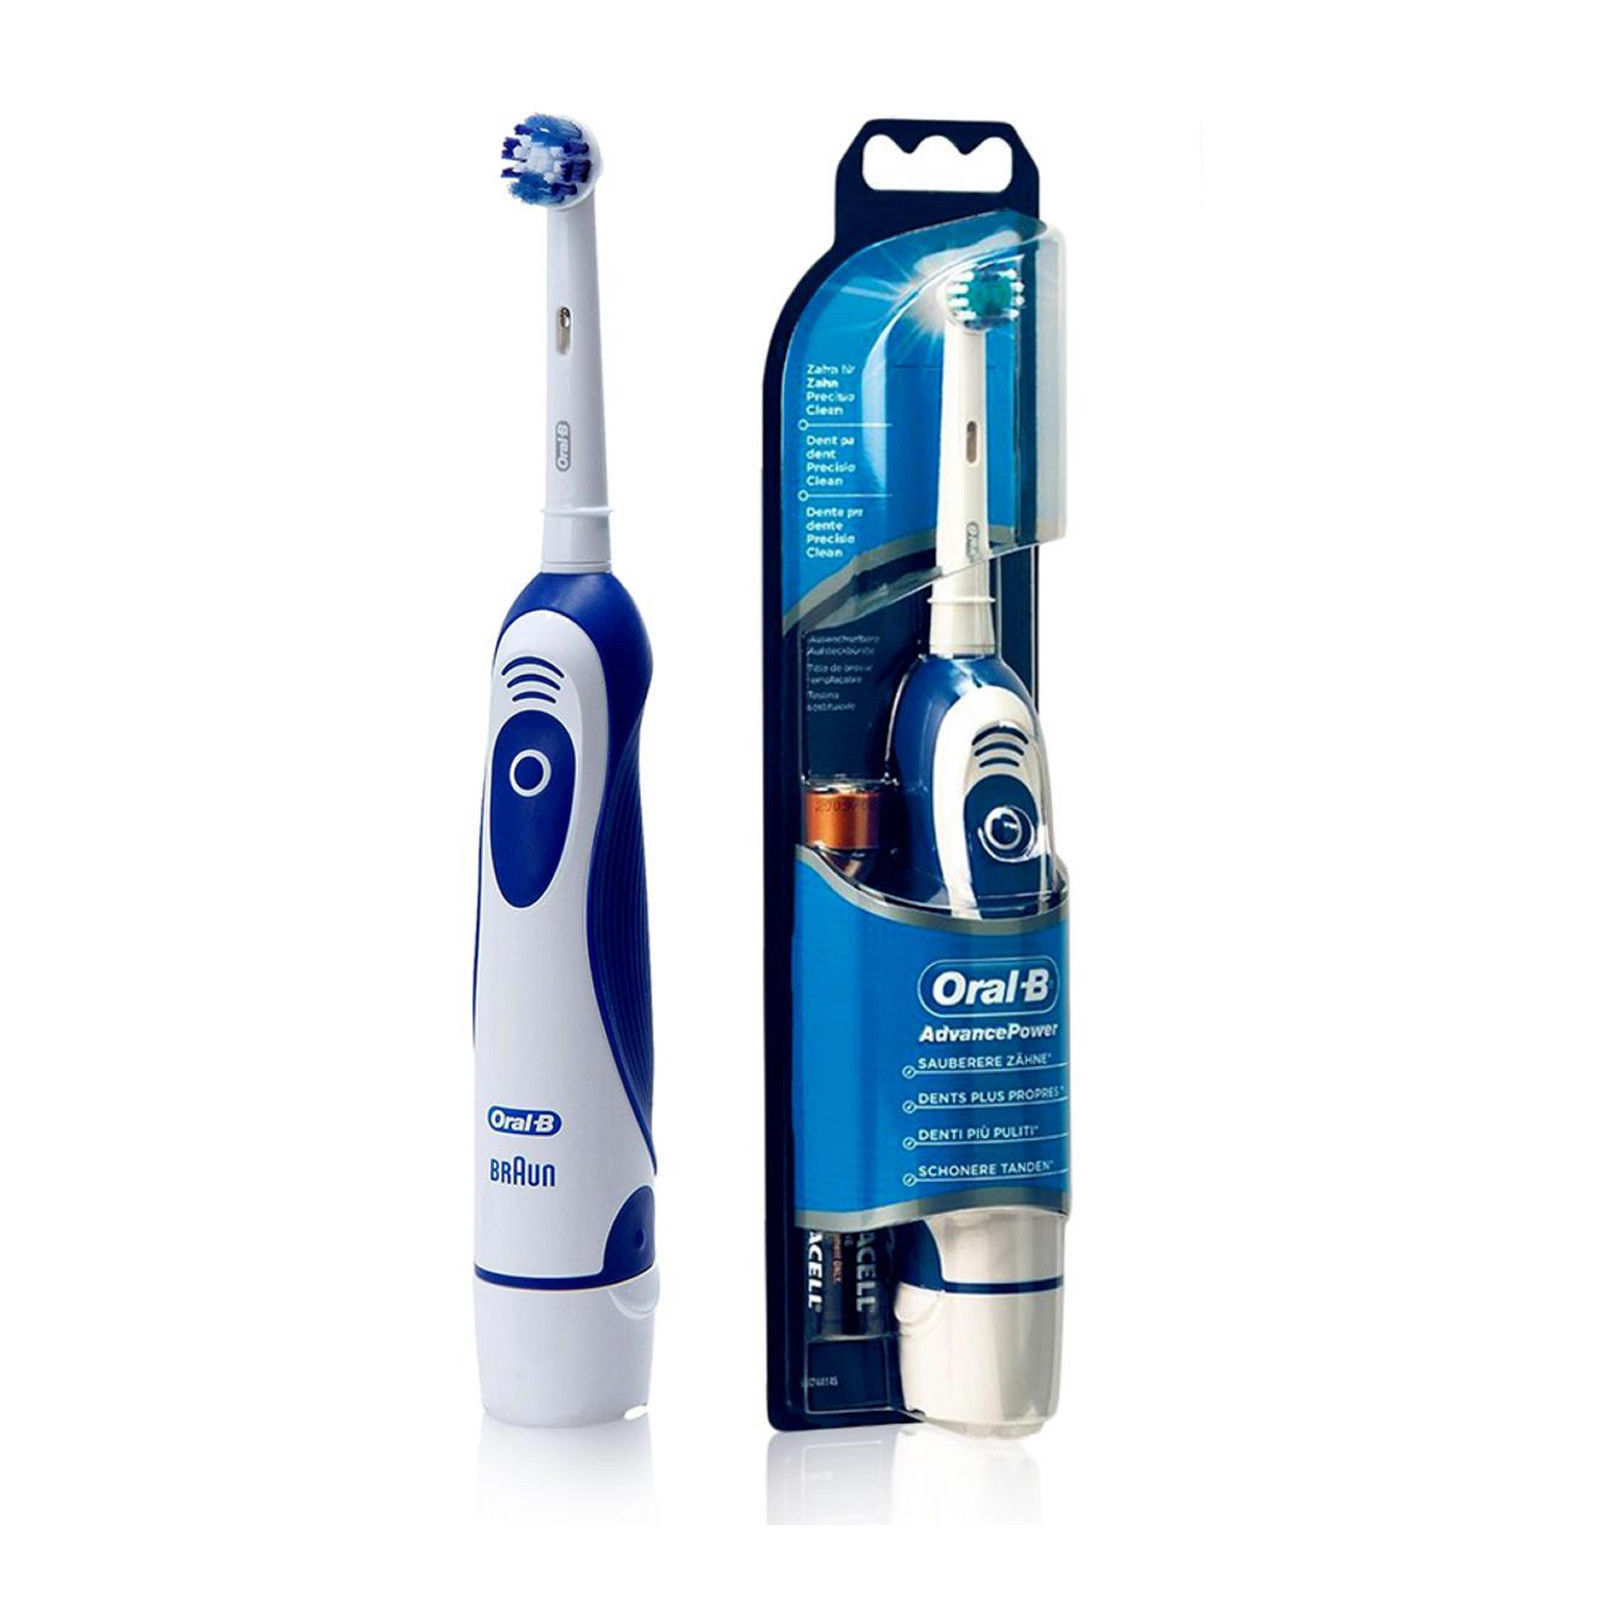 Braun Oral B Electric Toothbrush Deal Mania Free Delivery